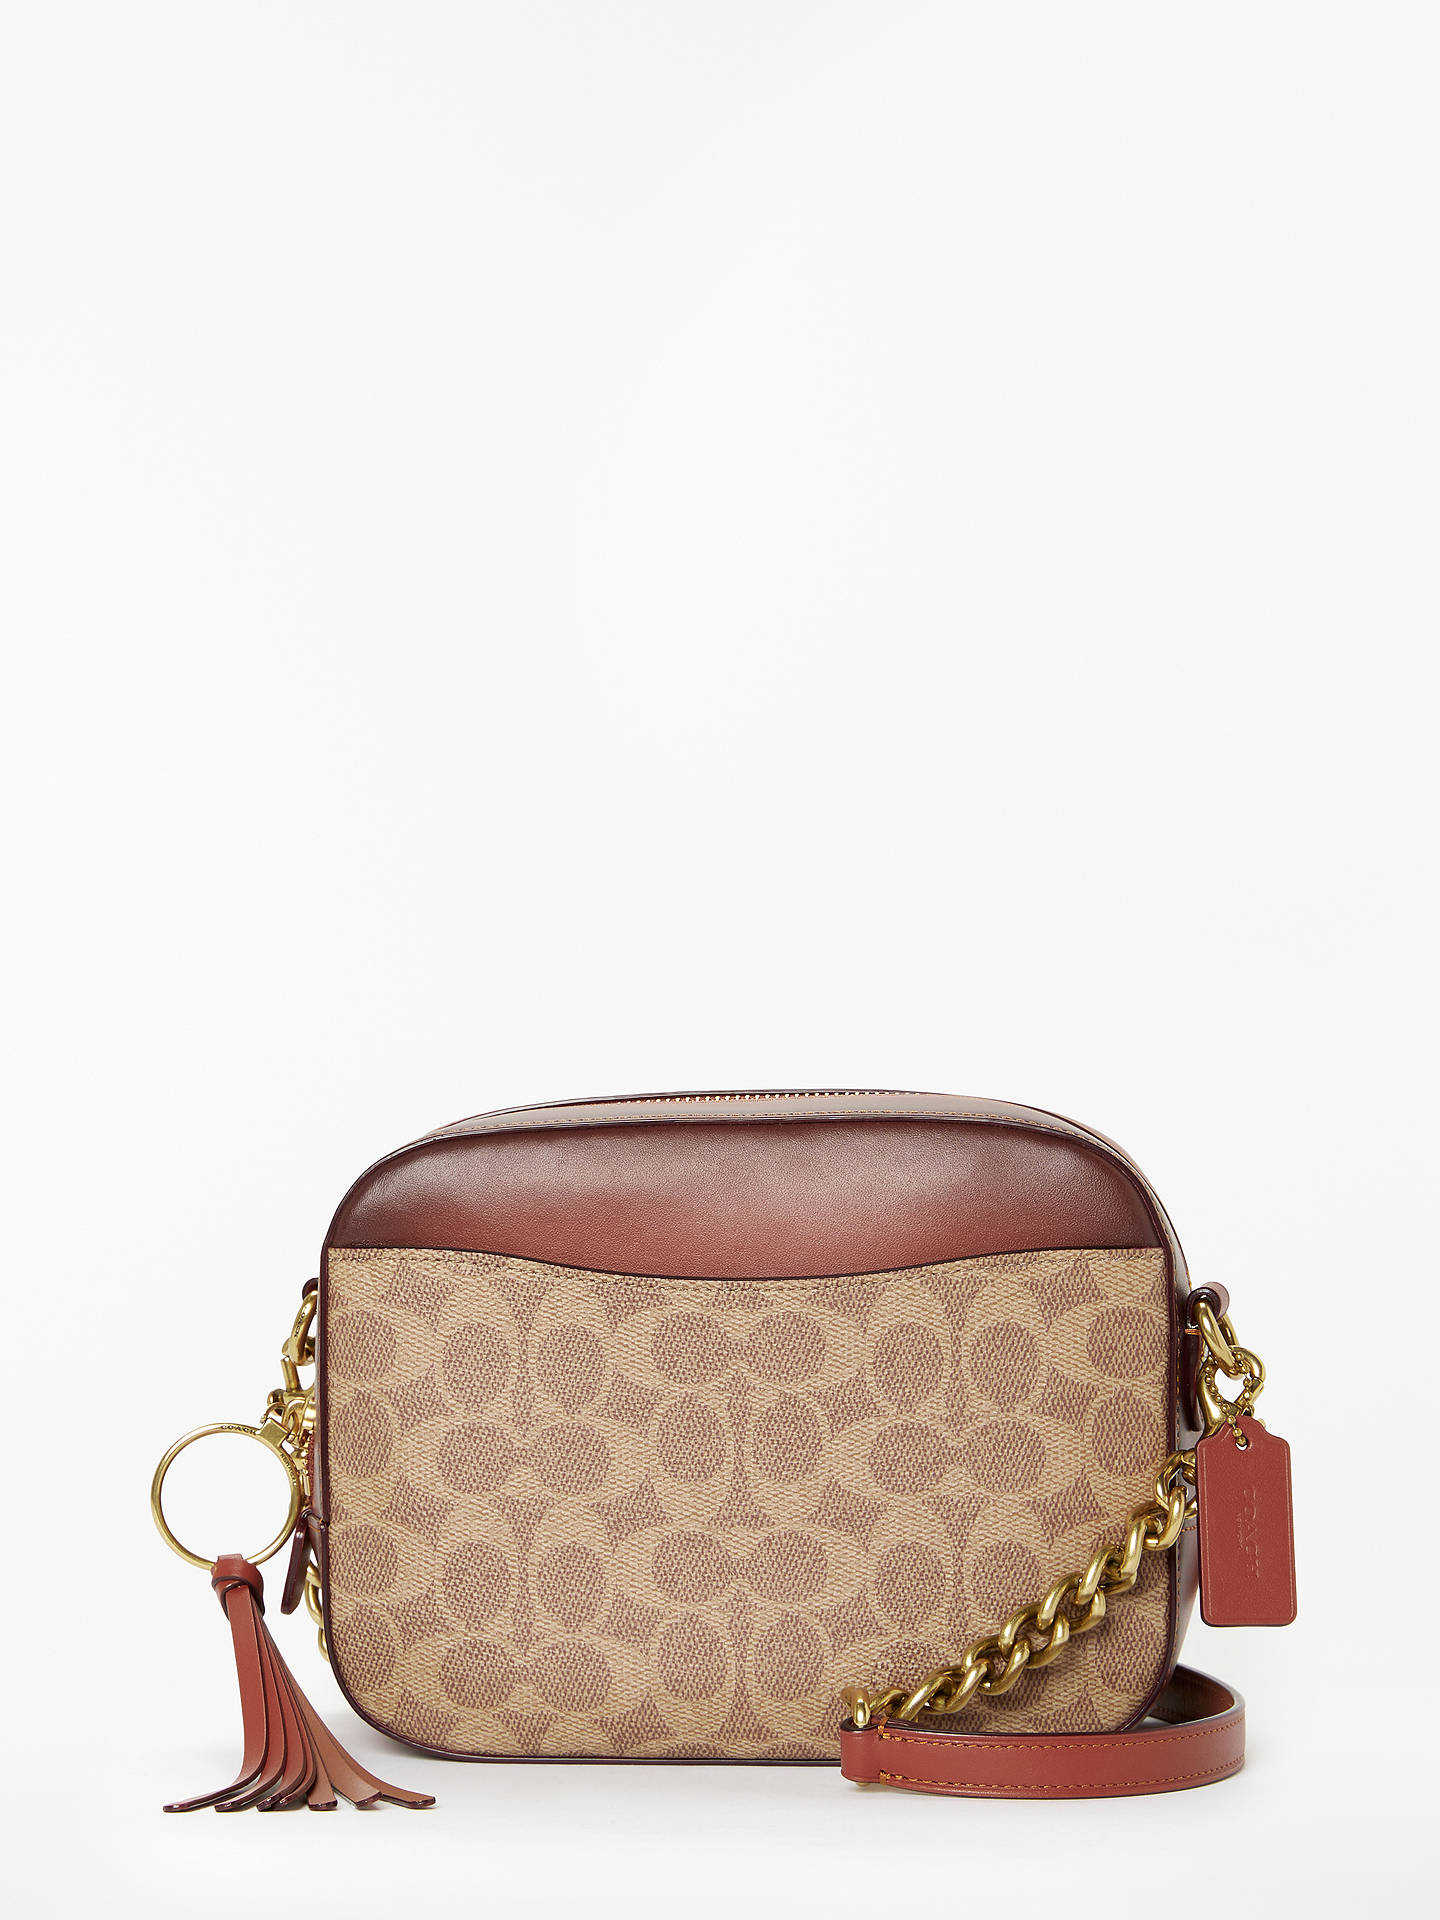 75e5b023d39 Buy Coach Signature Canvas Camera Bag, Tan/Rust Online at johnlewis.com ...